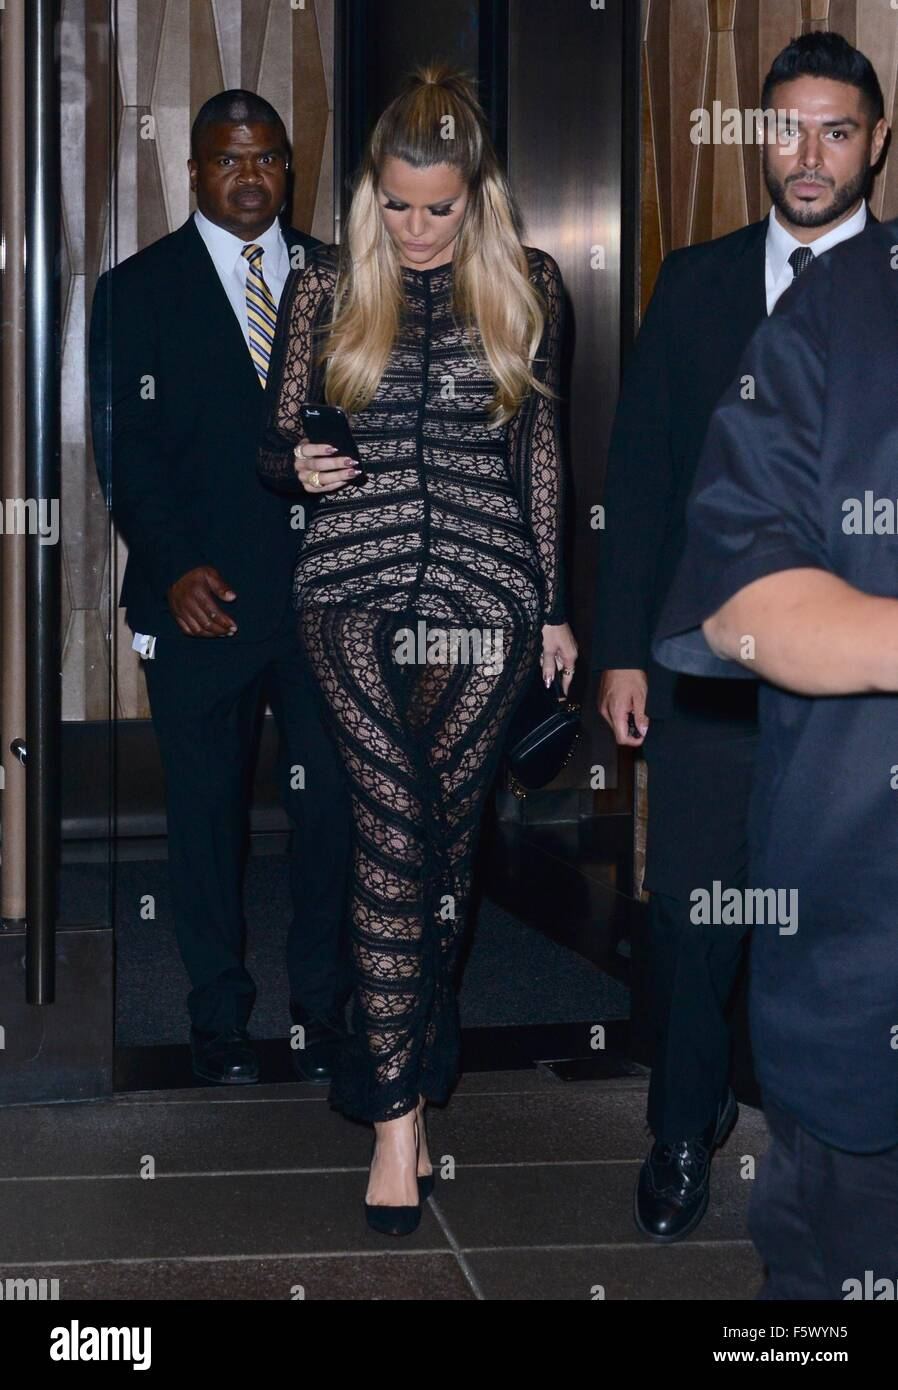 pictures Khloe kardashian night out style york city